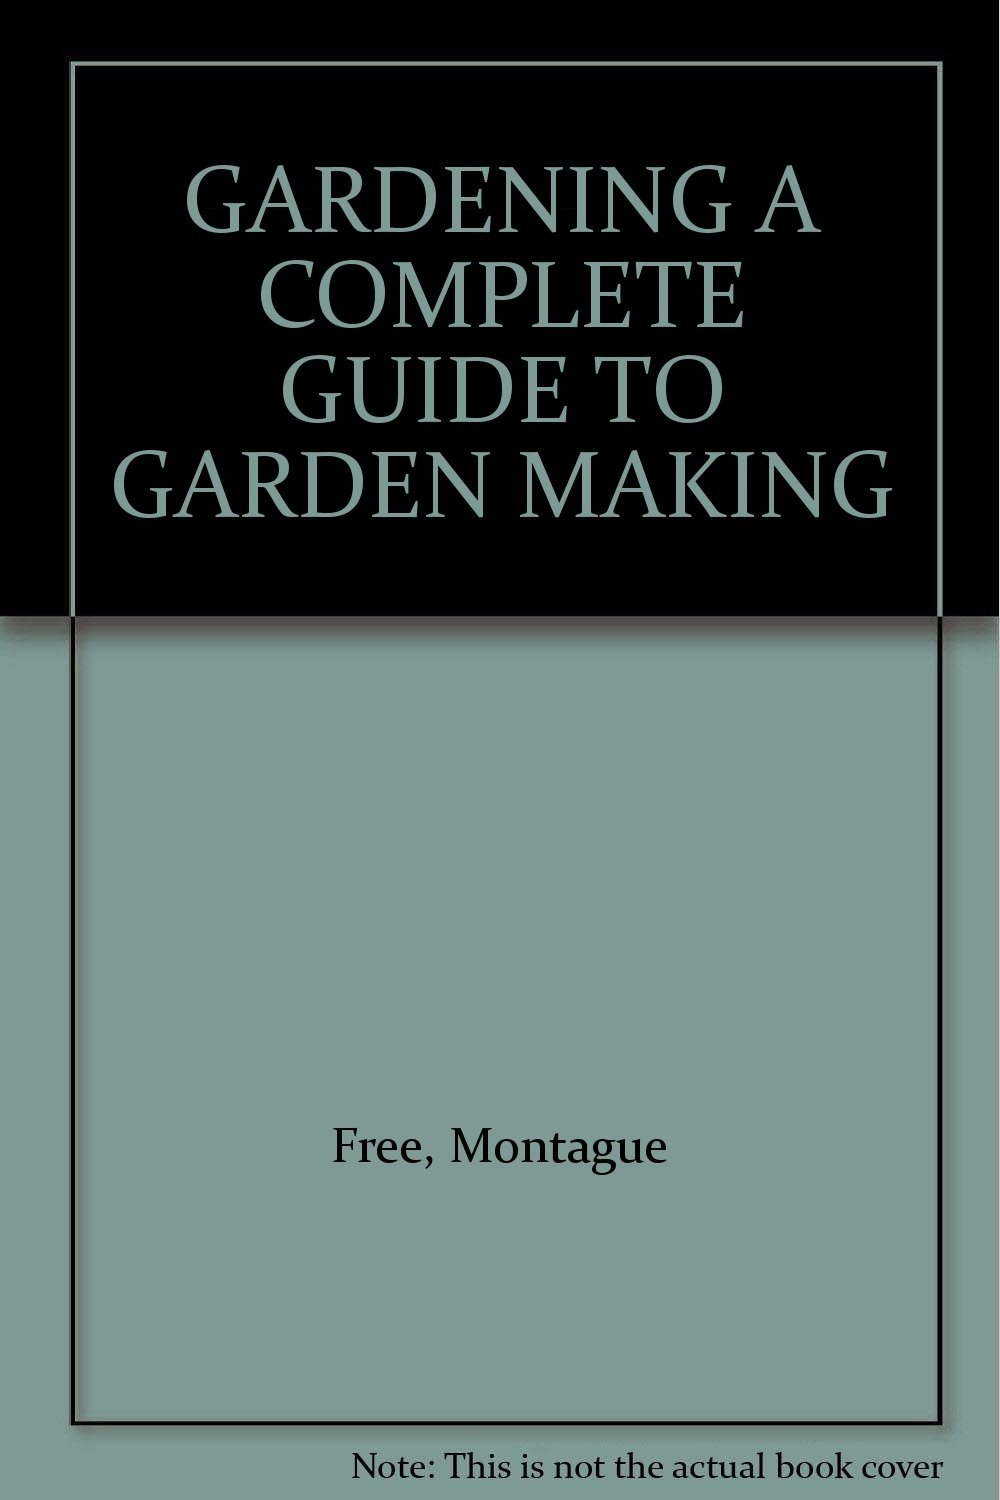 Gardening: A Complete Guide to Garden Making